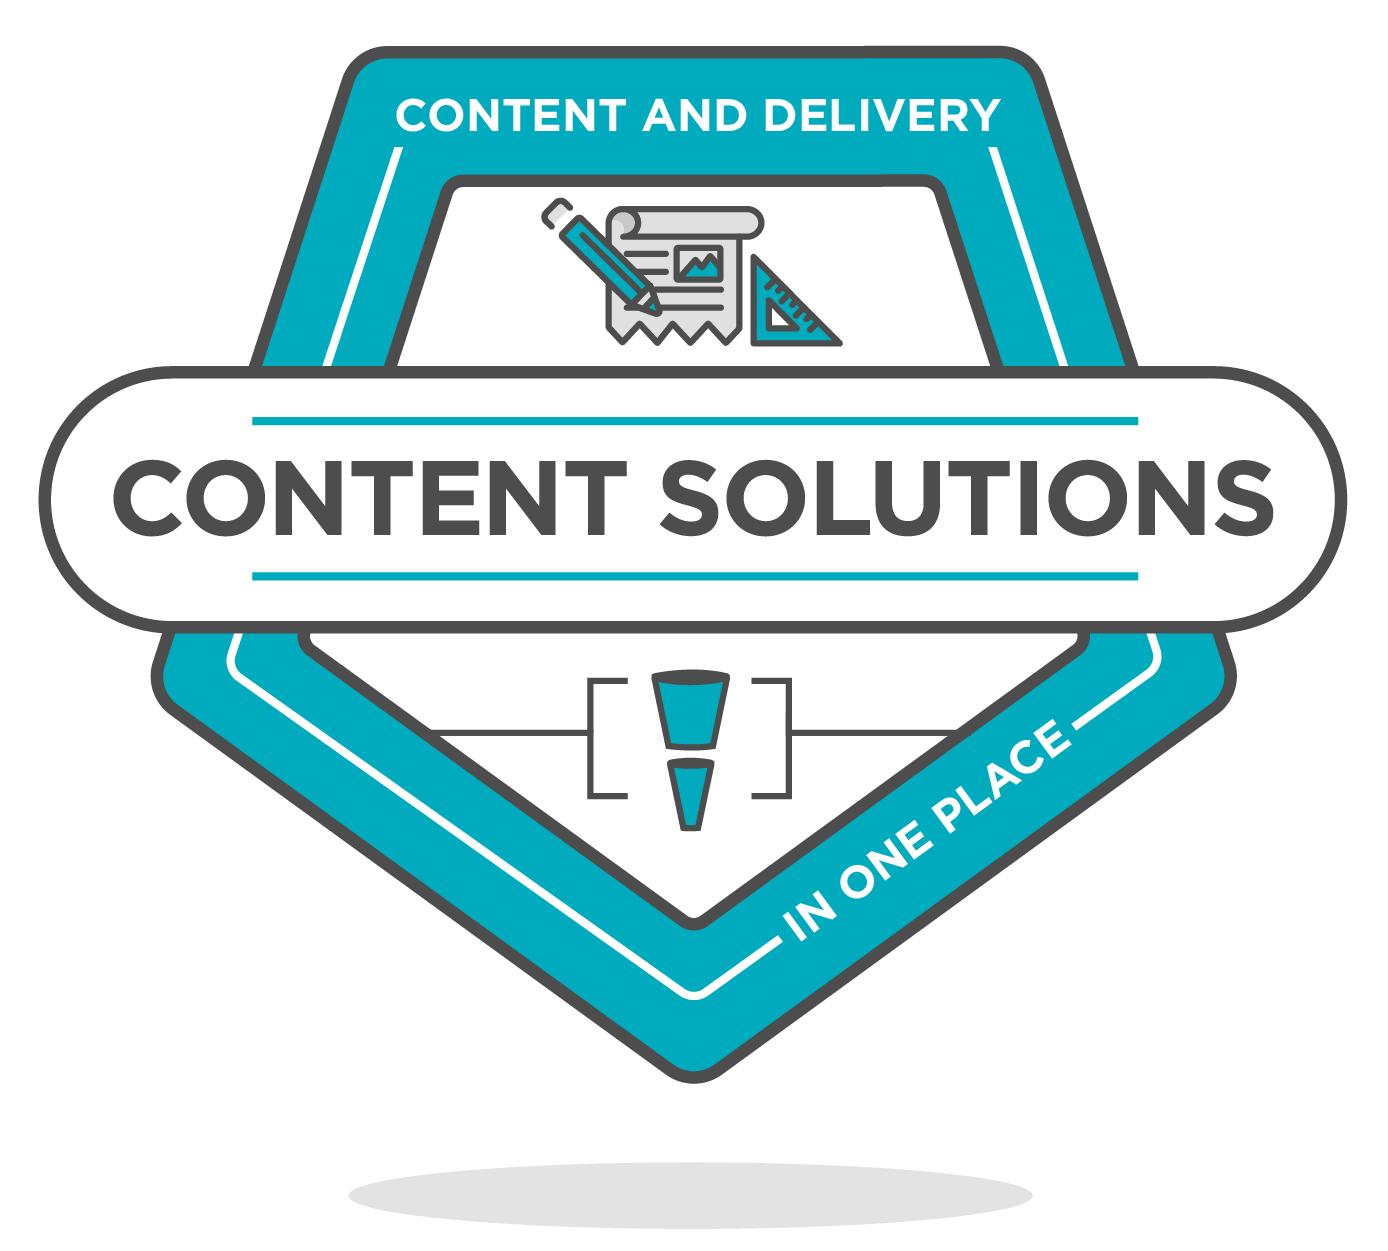 content solutions badge icon